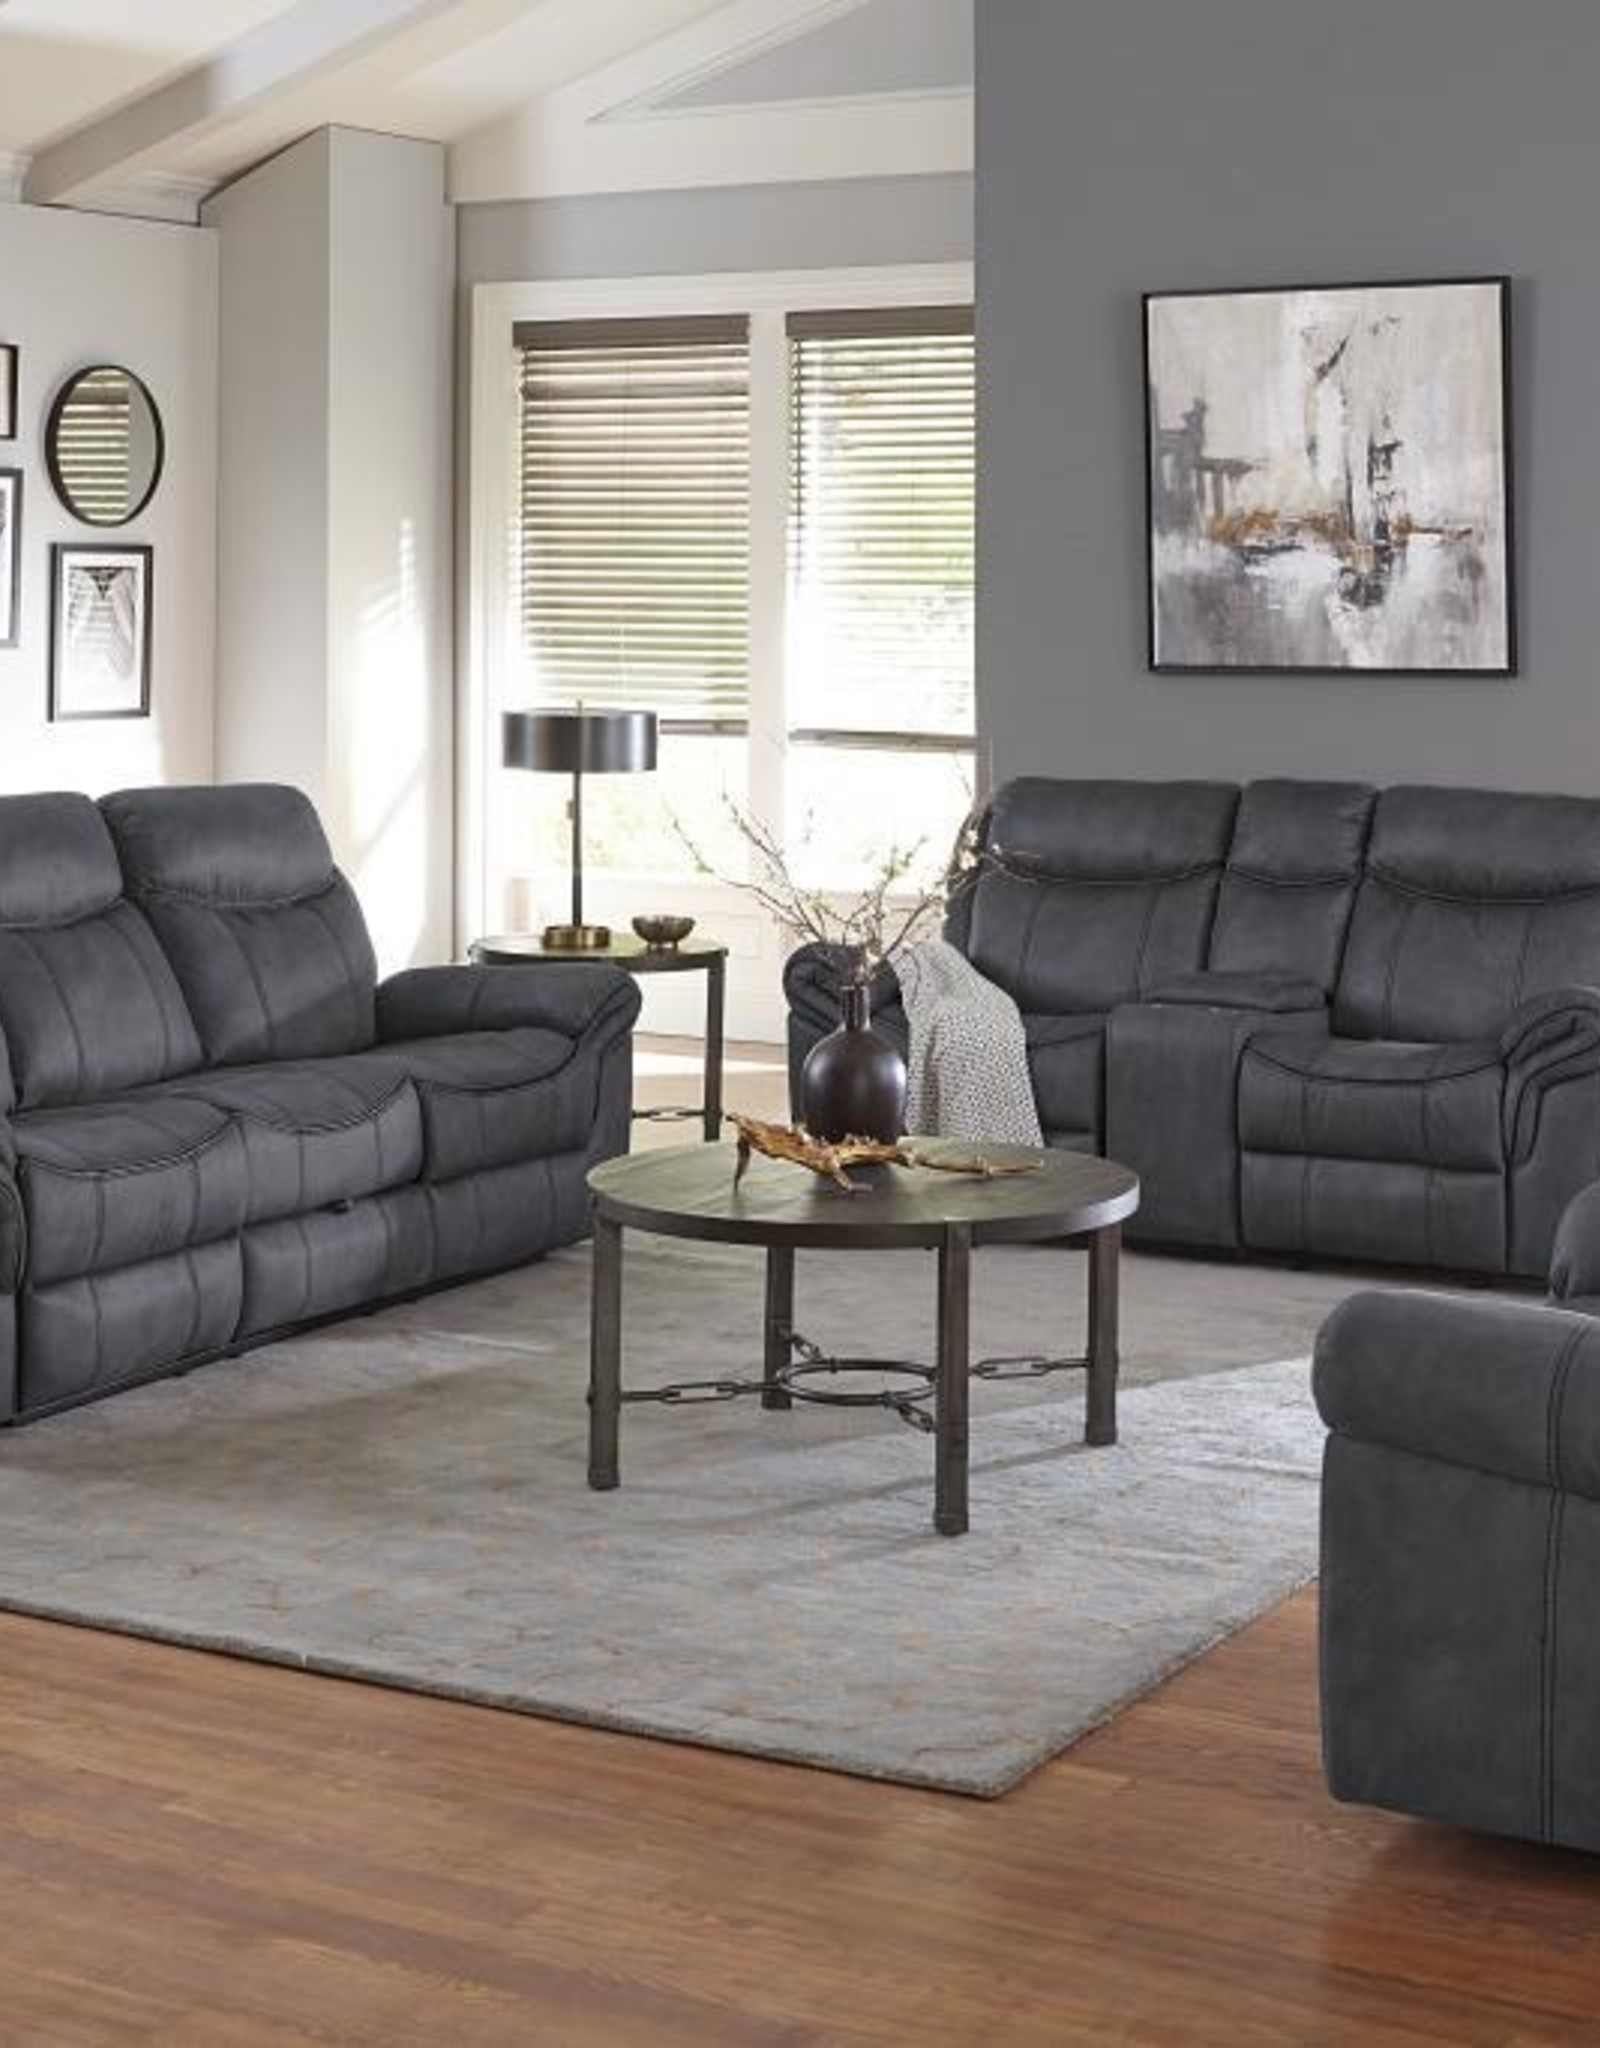 Standard Furniture Knoxville Grey Dual-Reclining Sofa w/ Drop Table